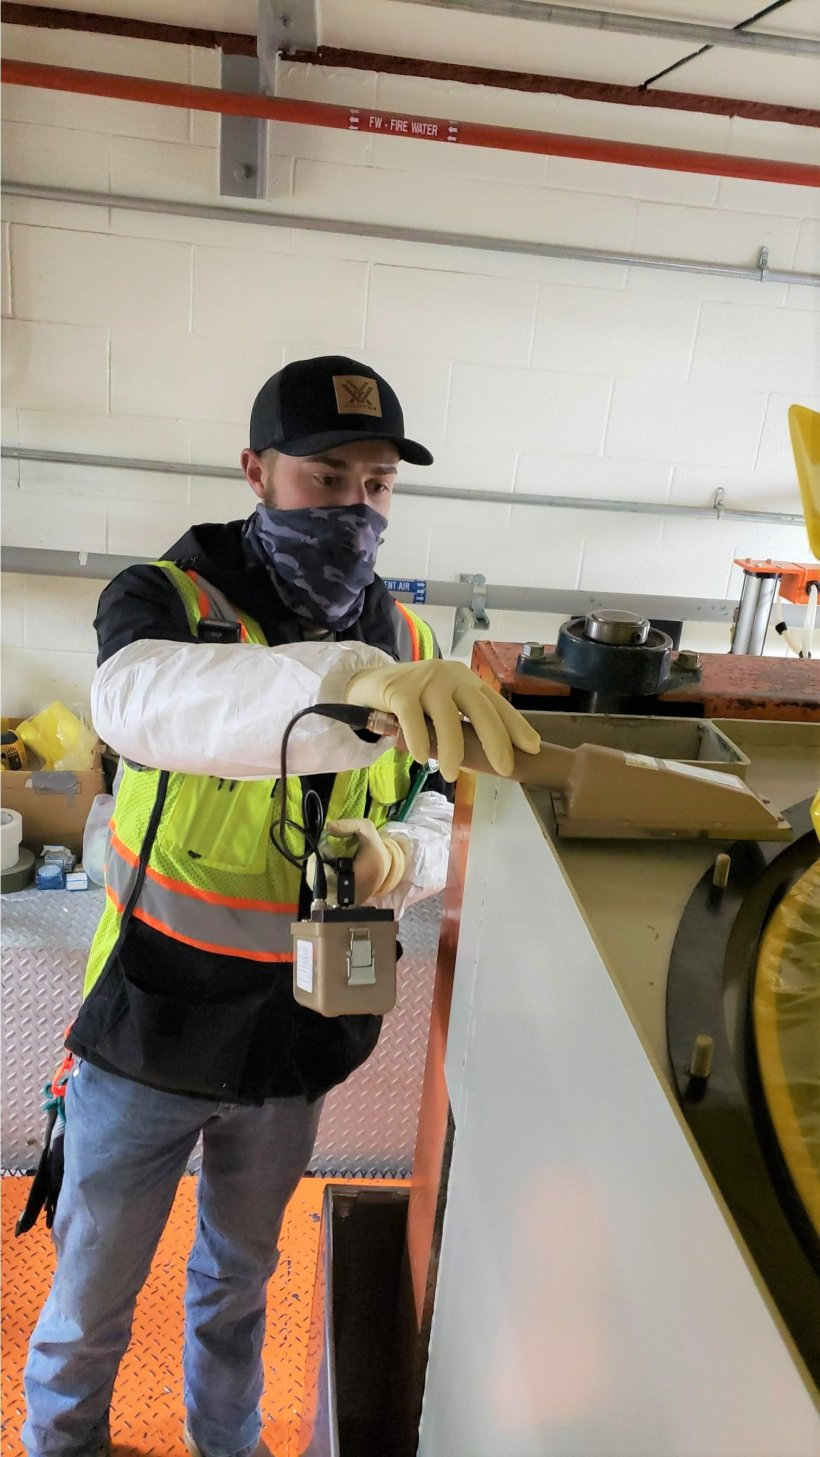 Ethan Hoopes, a radiation control technician for EM contractor Fluor Idaho, surveys a piece of equipment at the Advanced Mixed Waste Treatment Project at the Idaho National Laboratory Site.